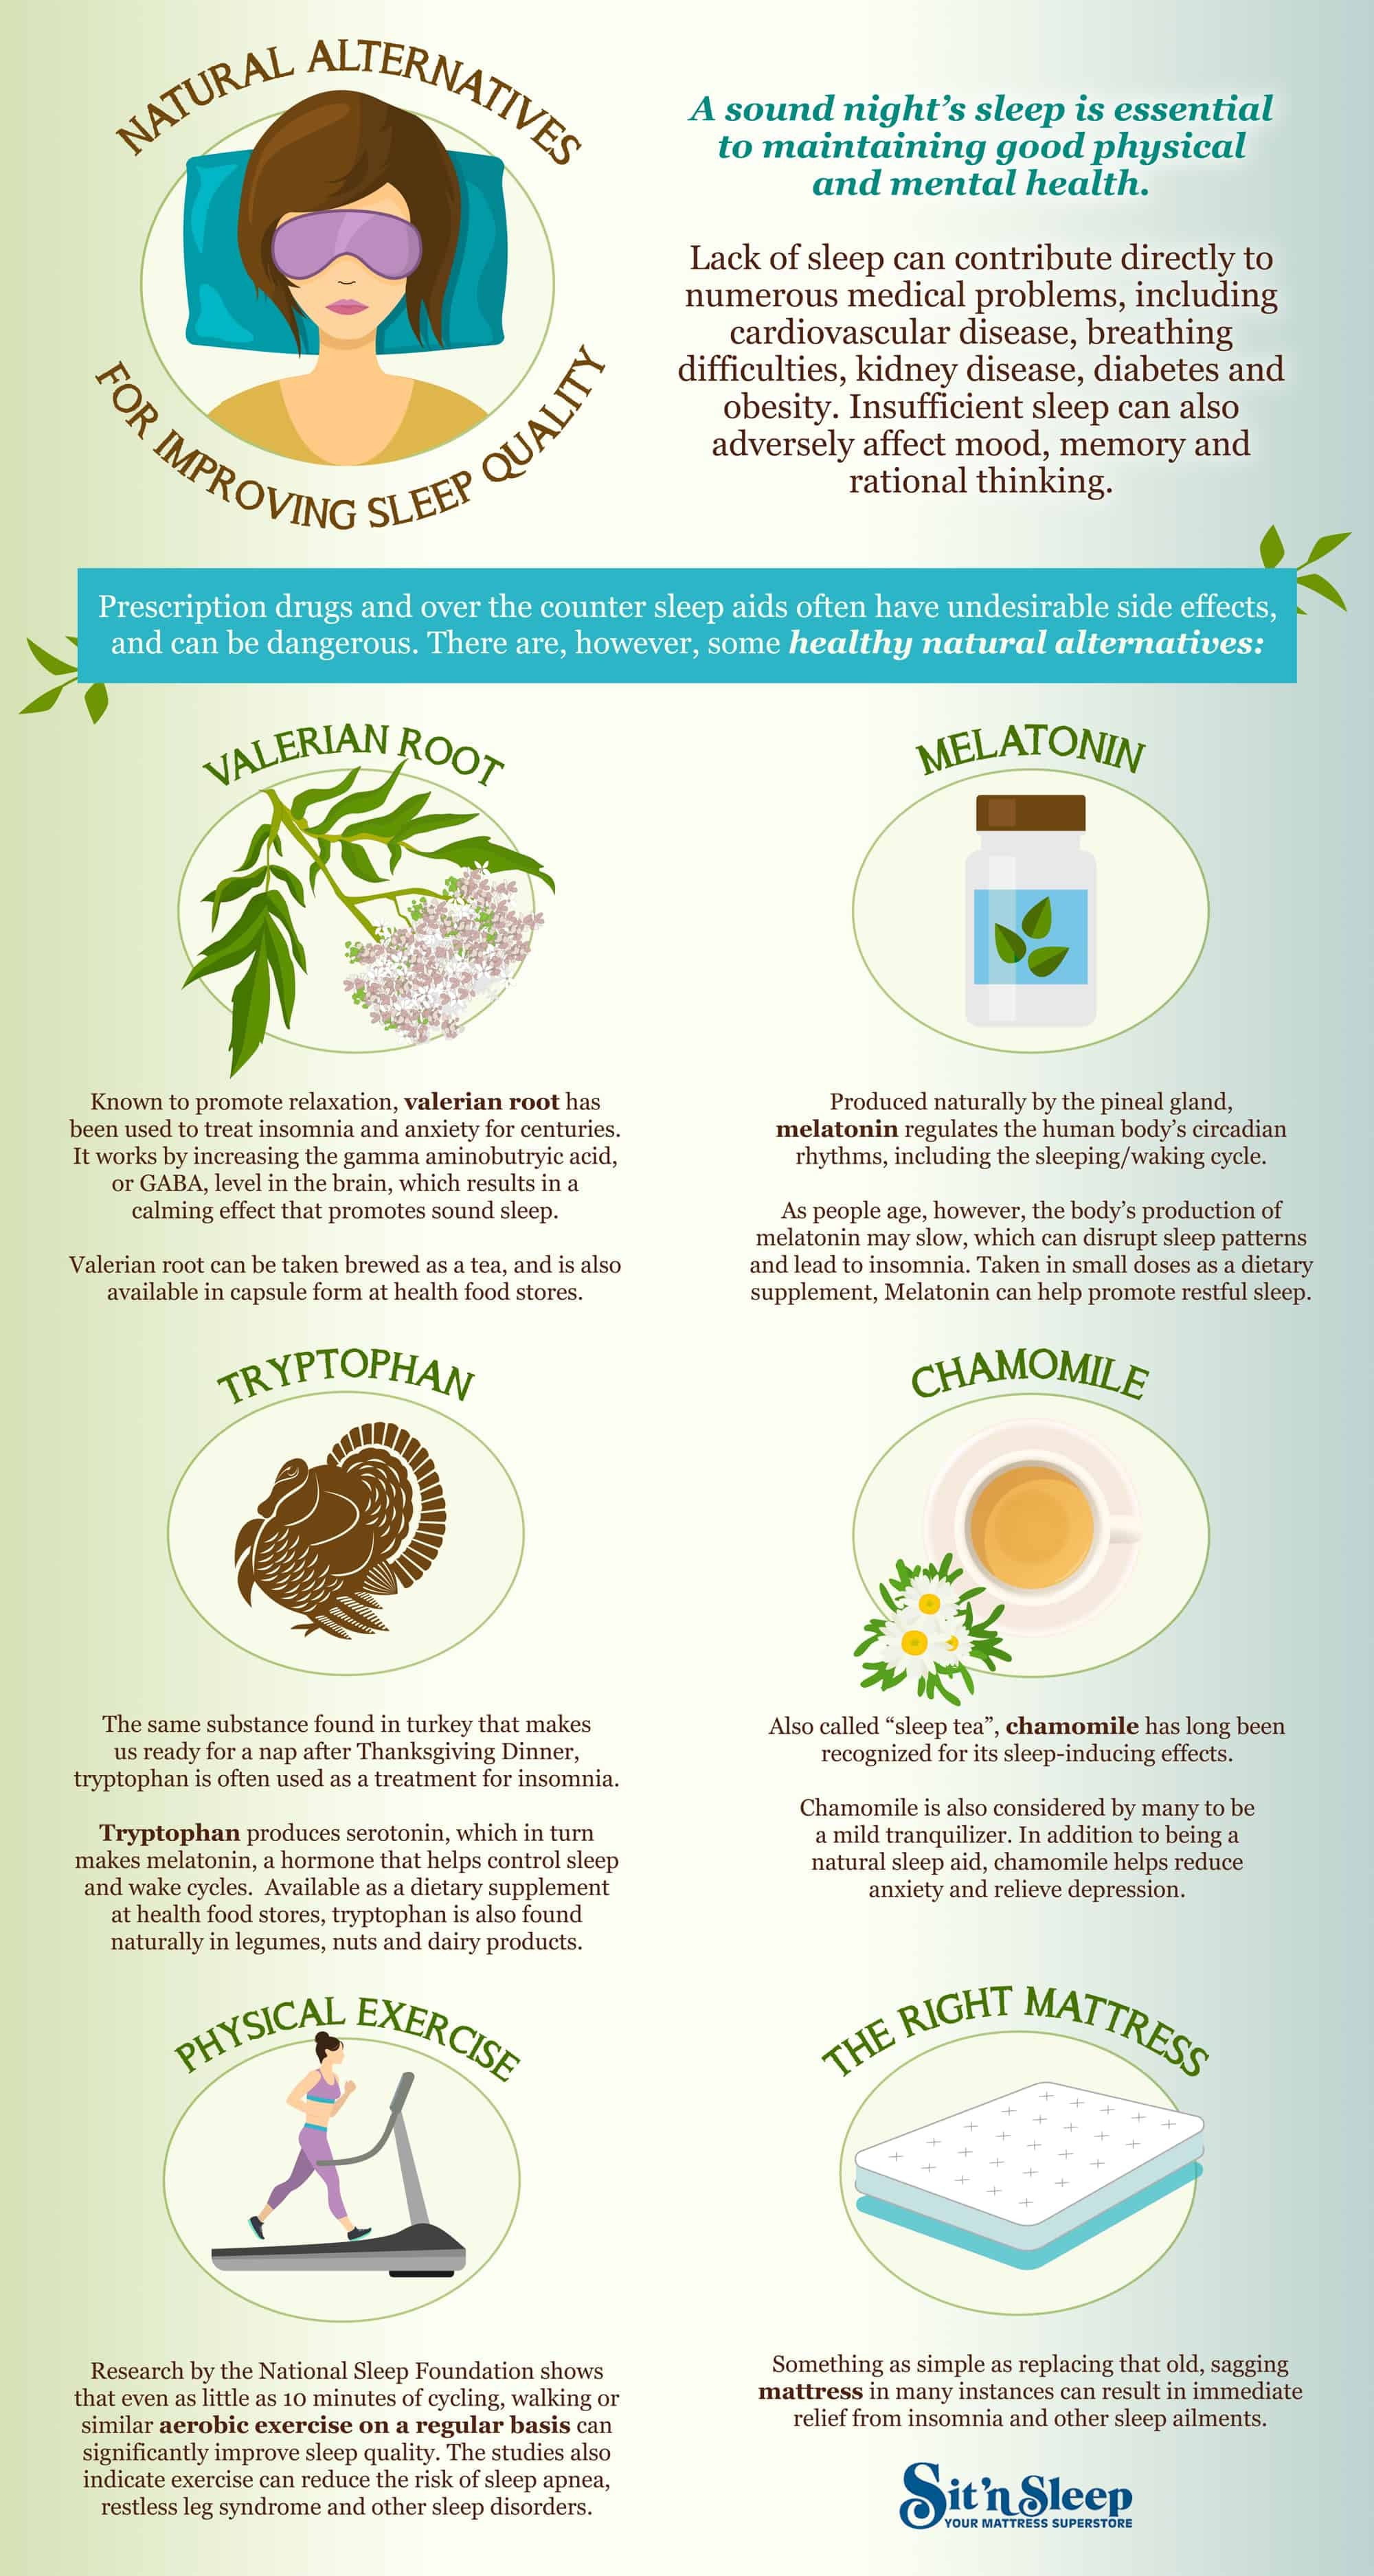 Sit n Sleep Infographic - Natural Alternatives for Sleep Quality